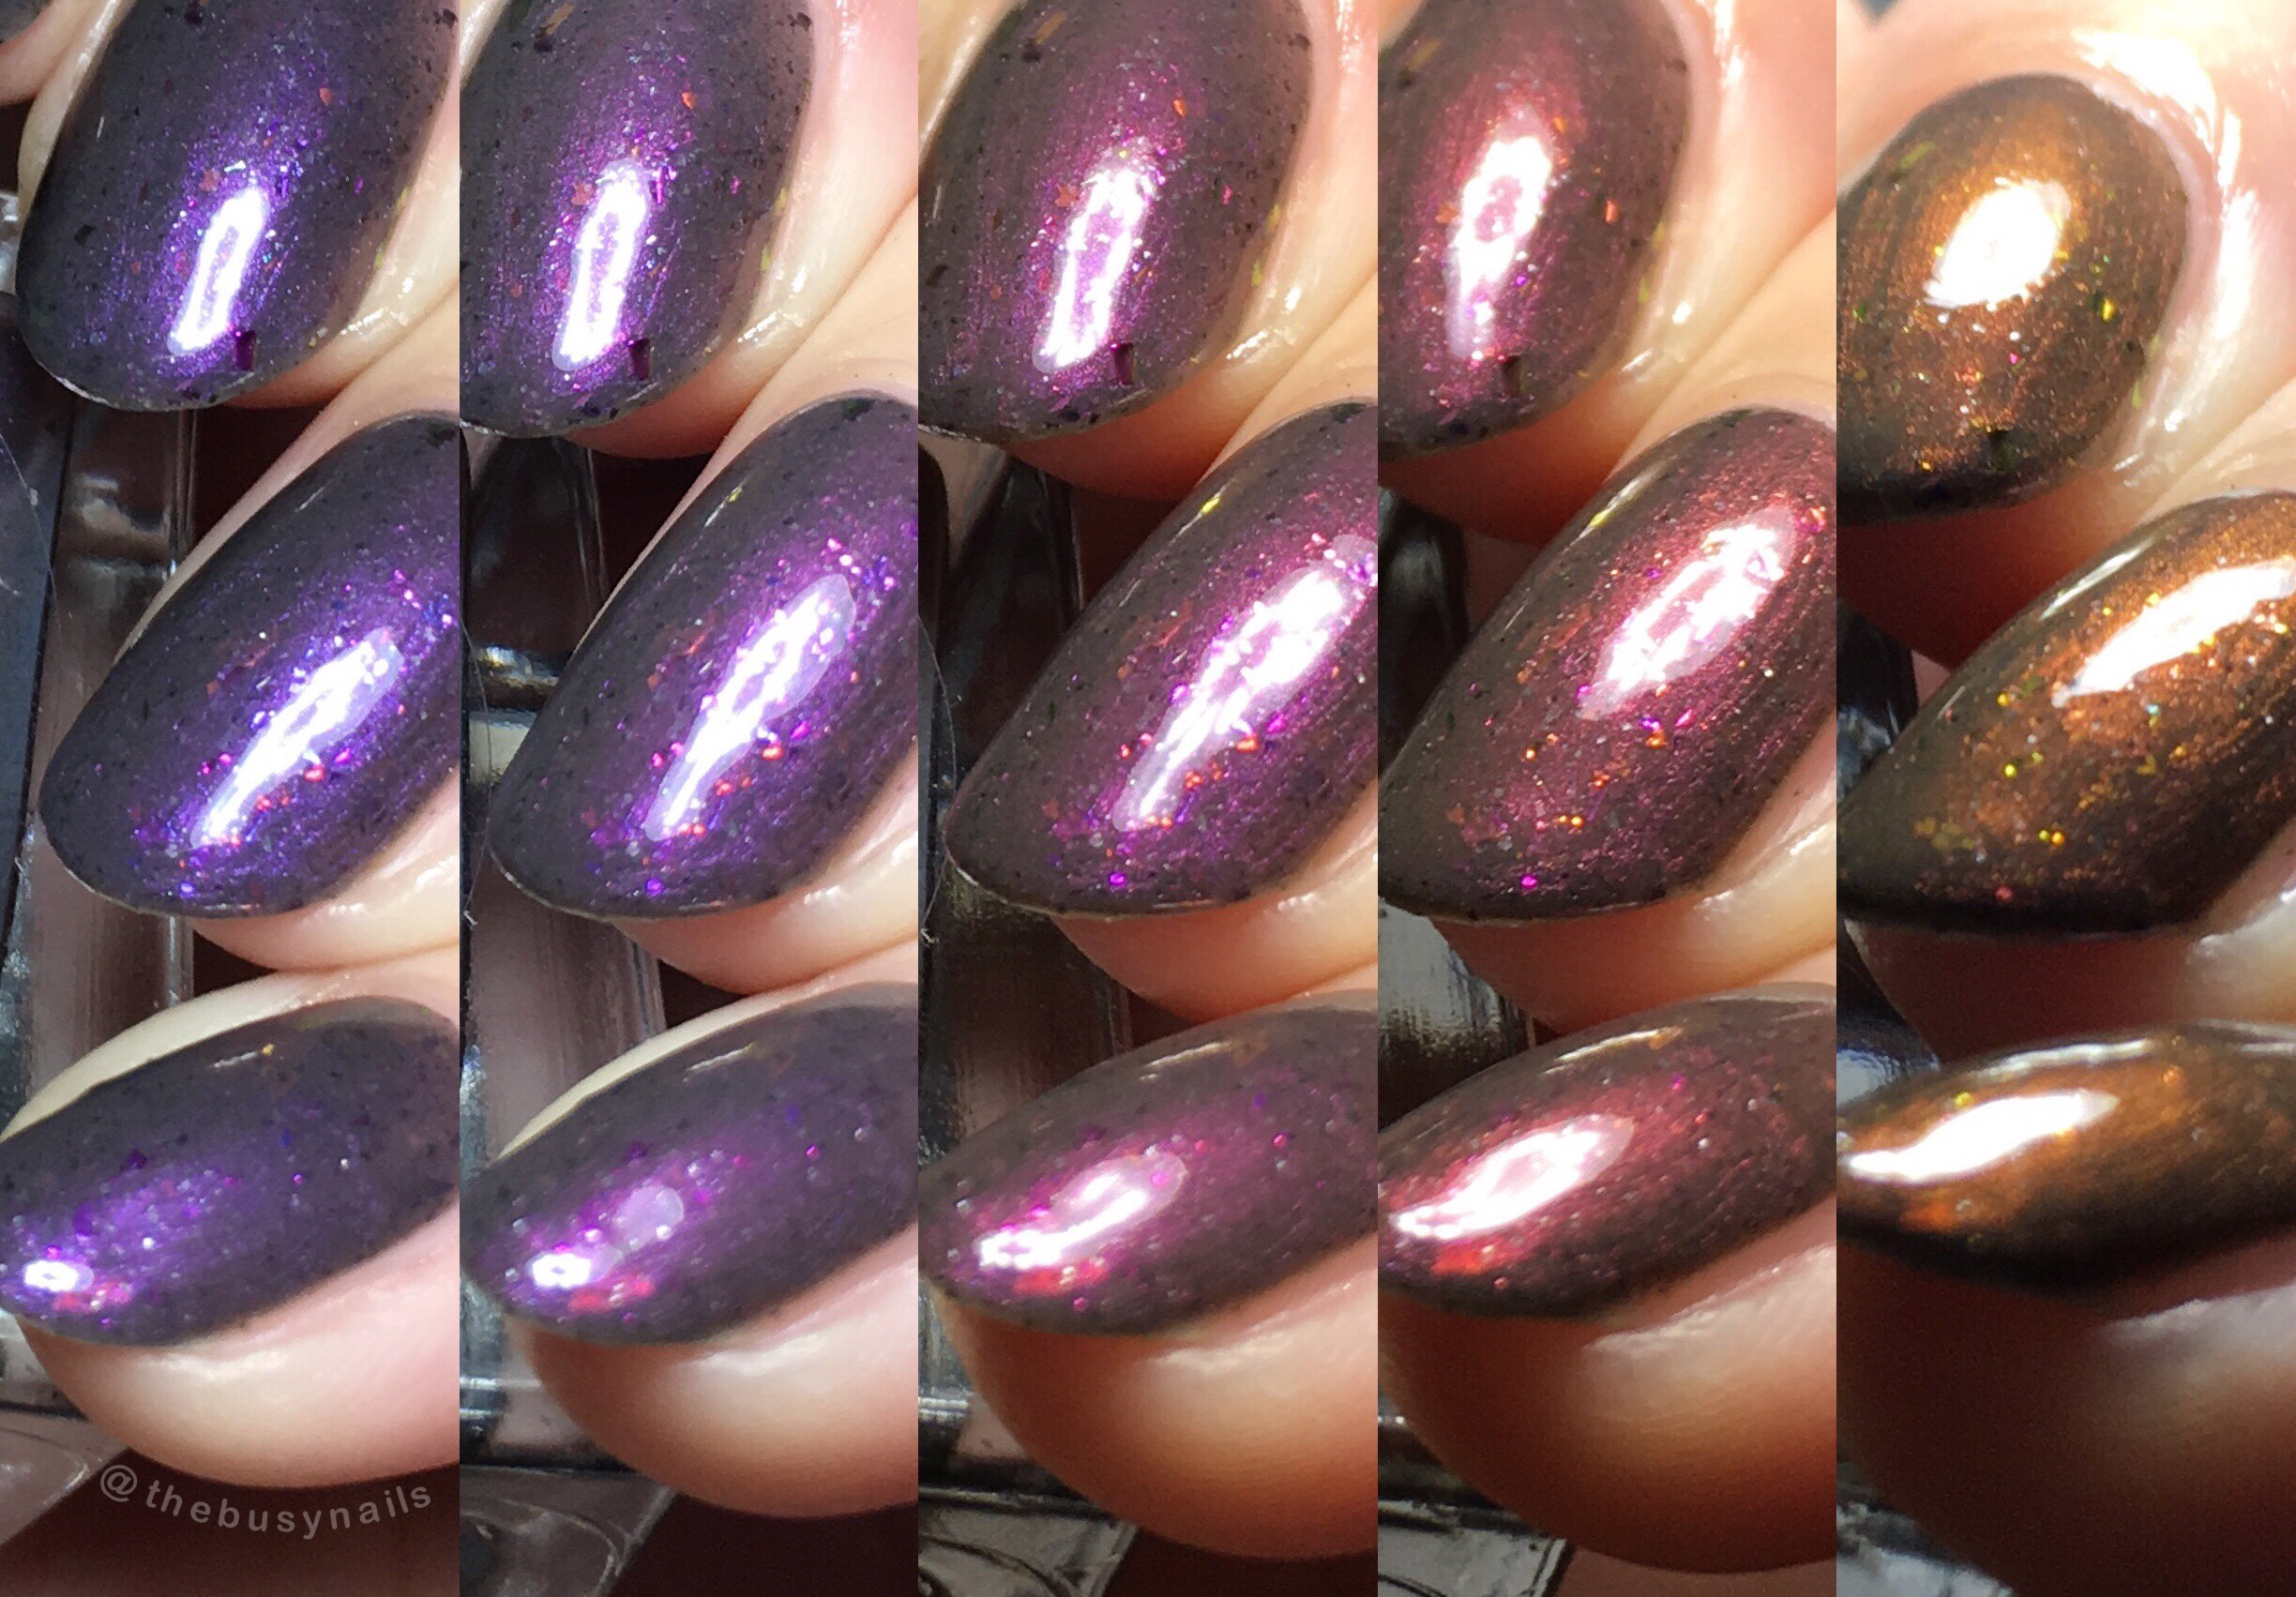 Like I said, the shift is VERY strong. Here you can see just a few examples of the color range.